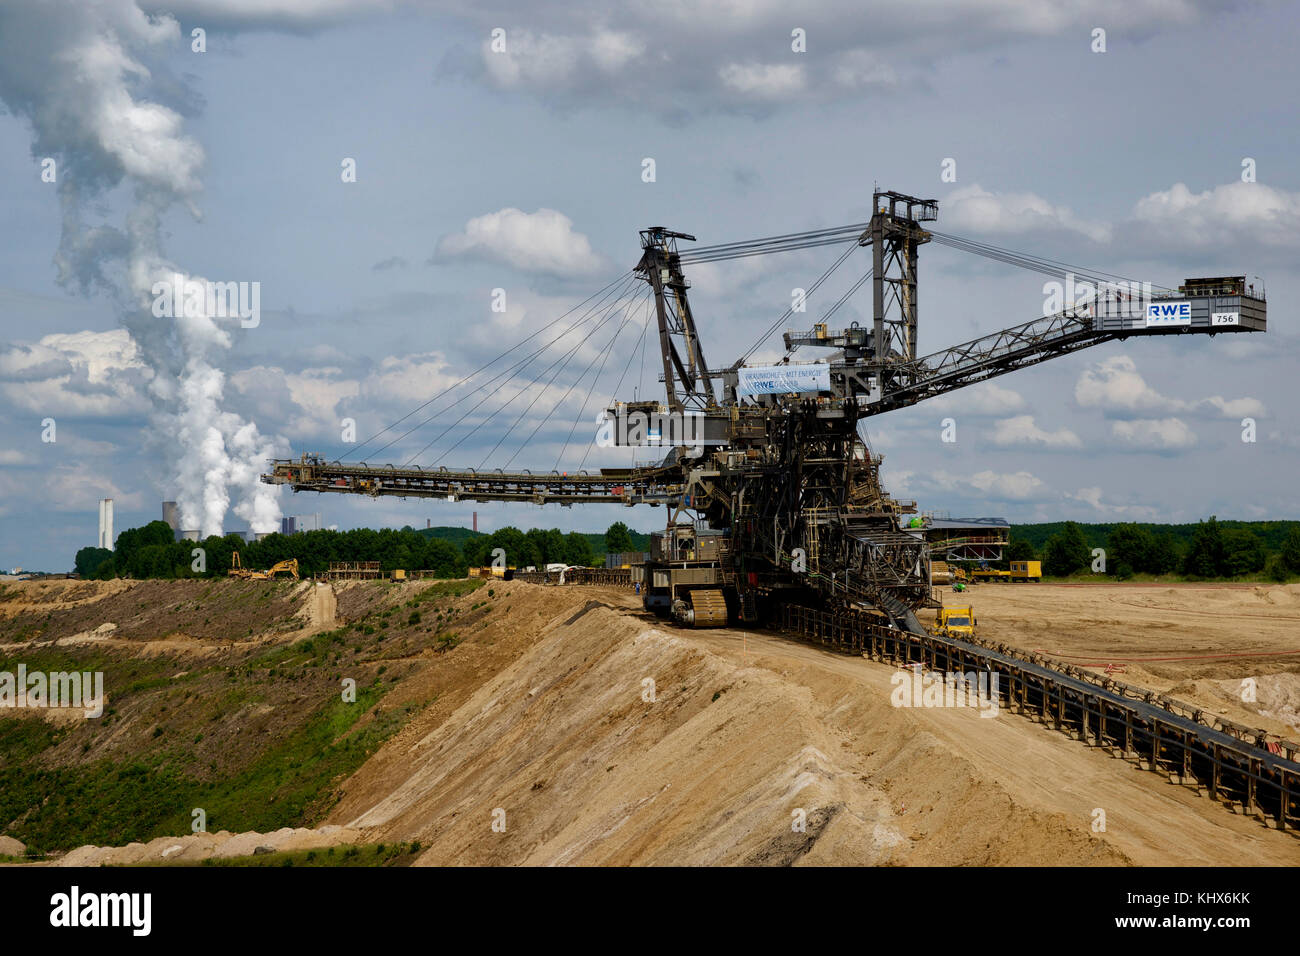 Above-ground brown coal mining in Germany. - Stock Image